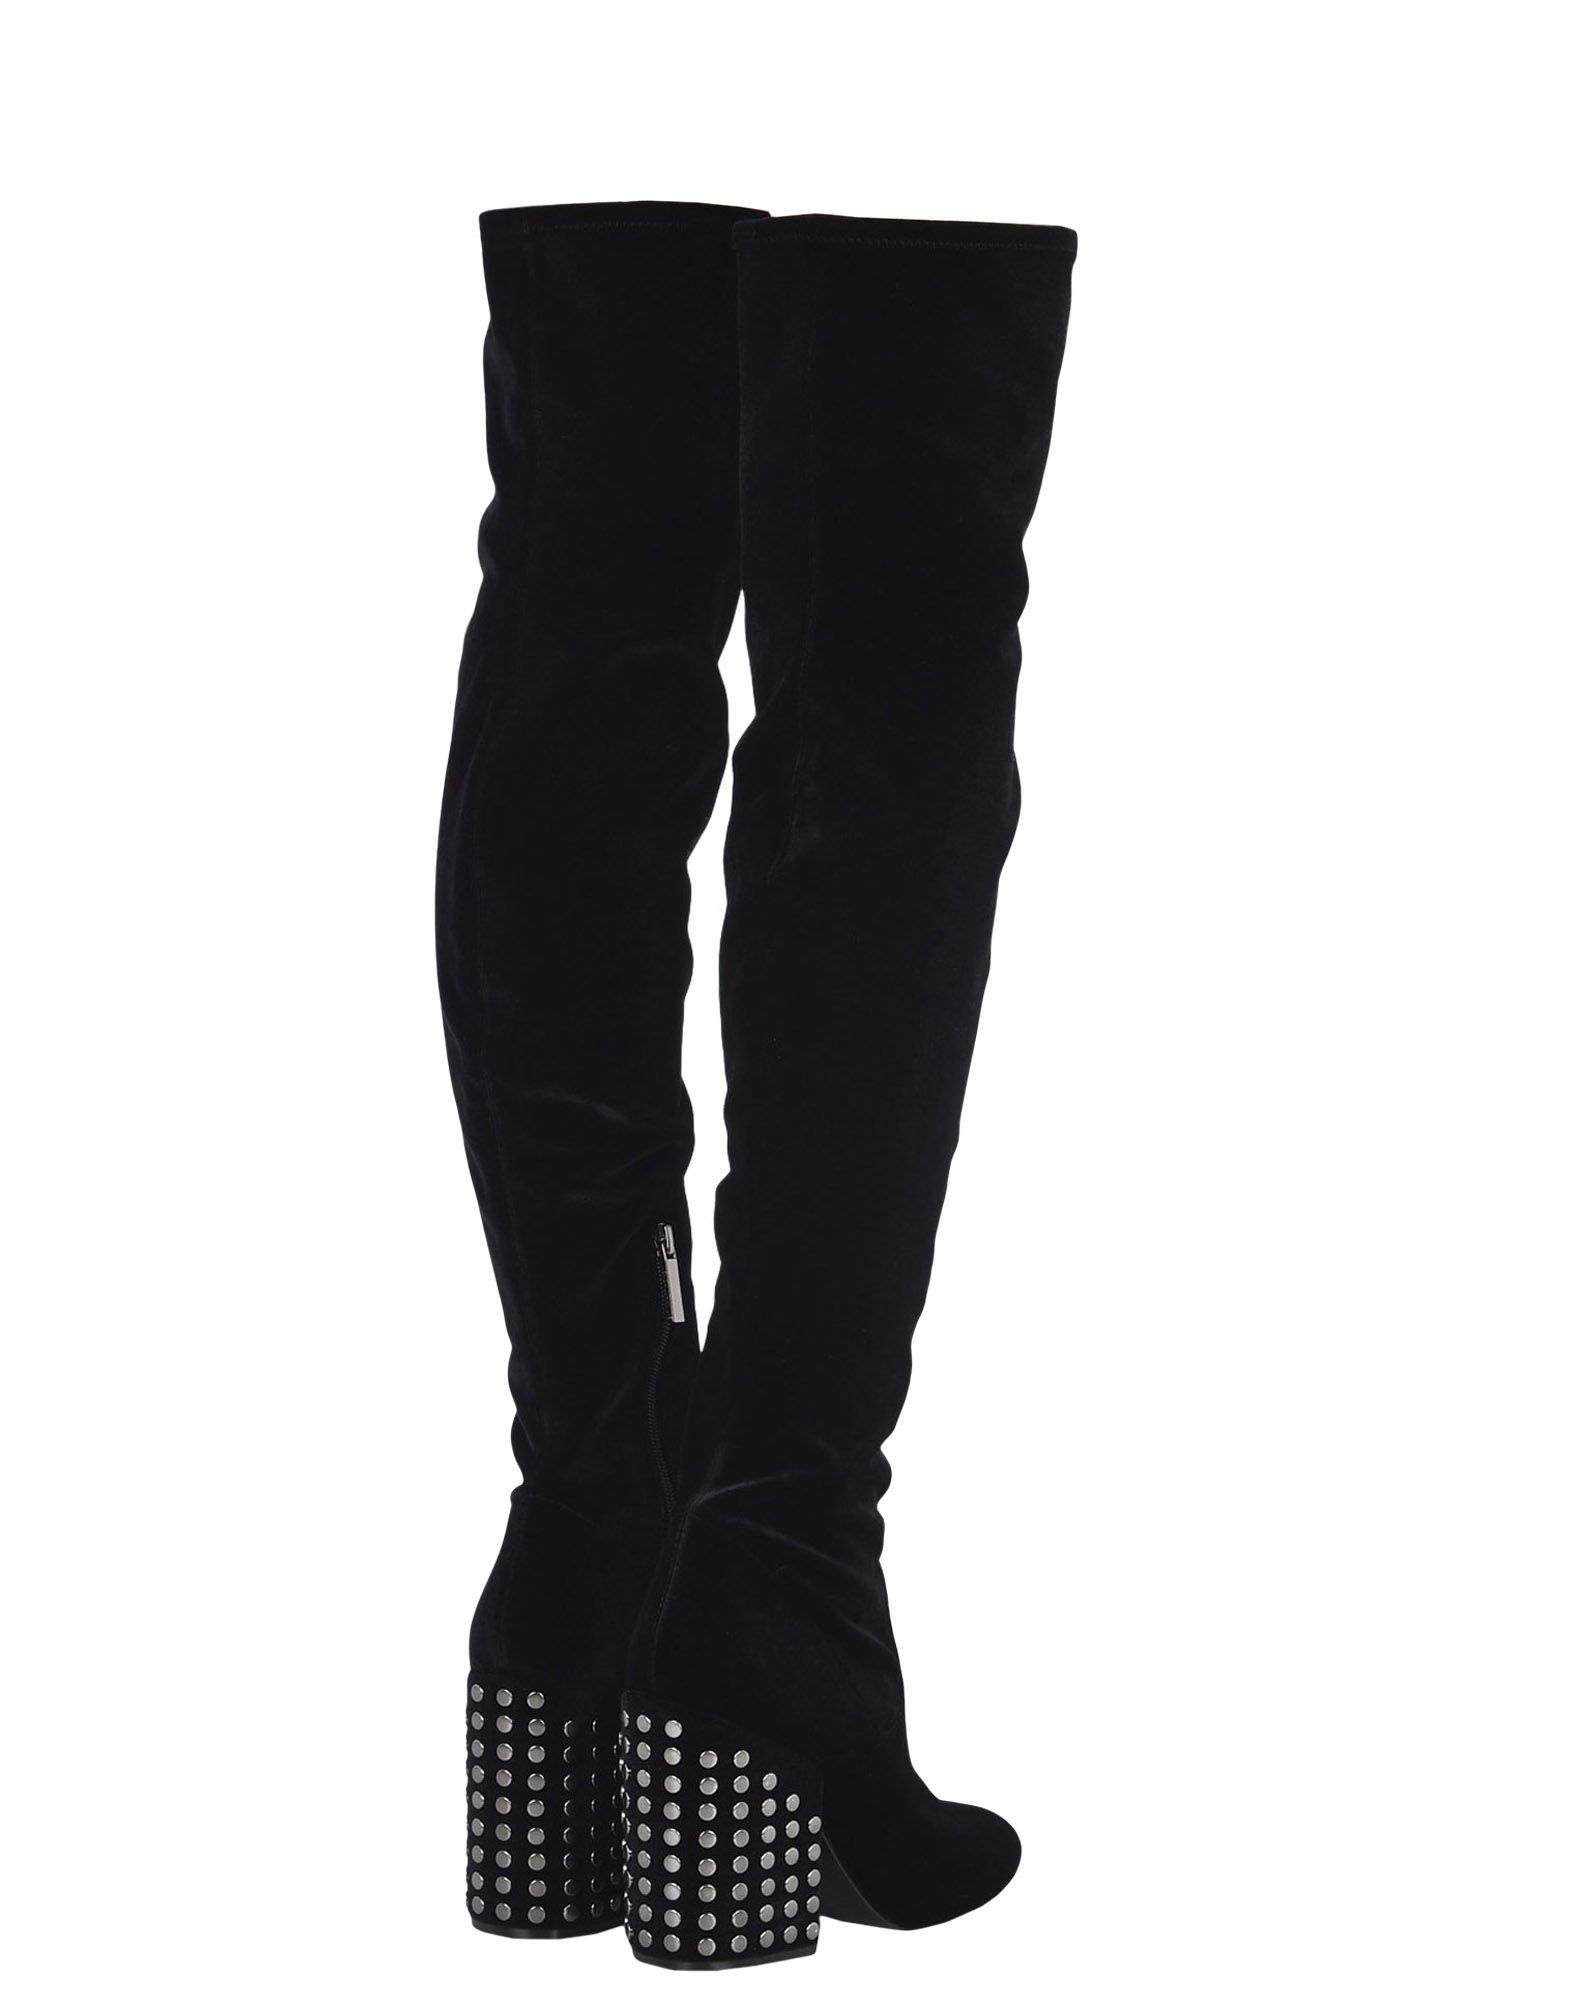 Bottes Kendall + Kylie Femme - Bottes Kendall + Kylie sur